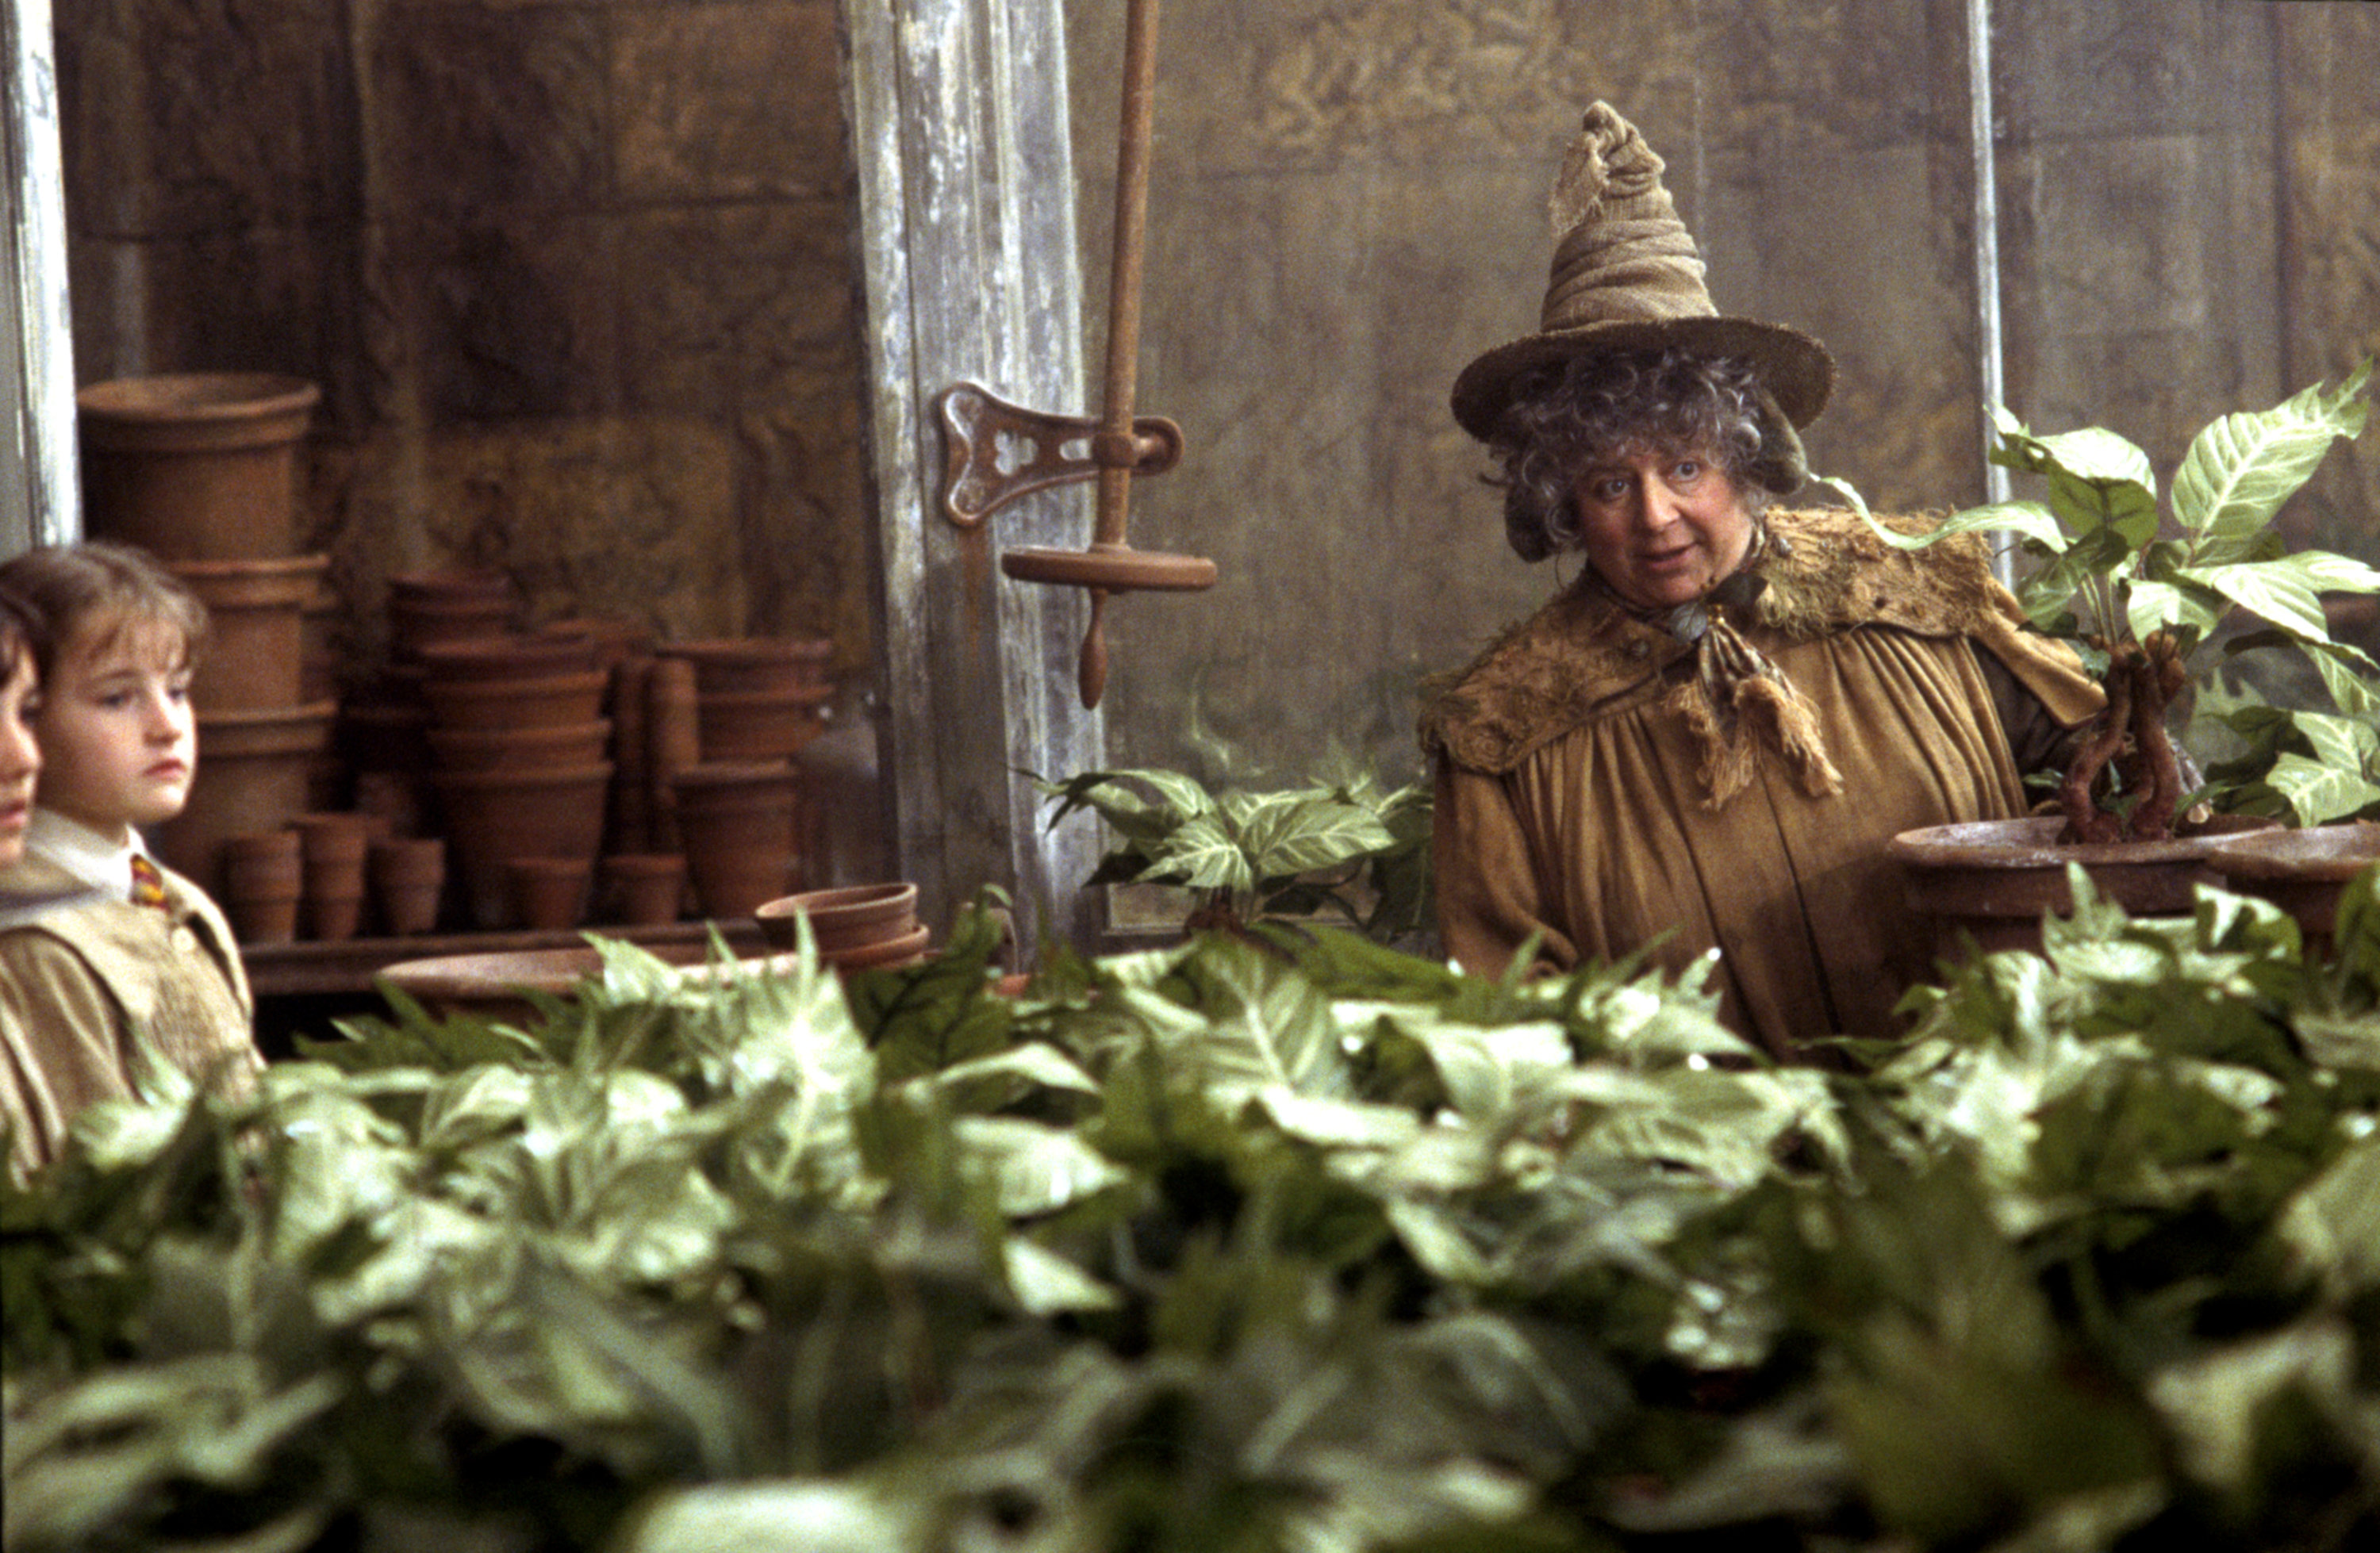 Pomona Sprout in her greenhouse from the Chamber of Secrets